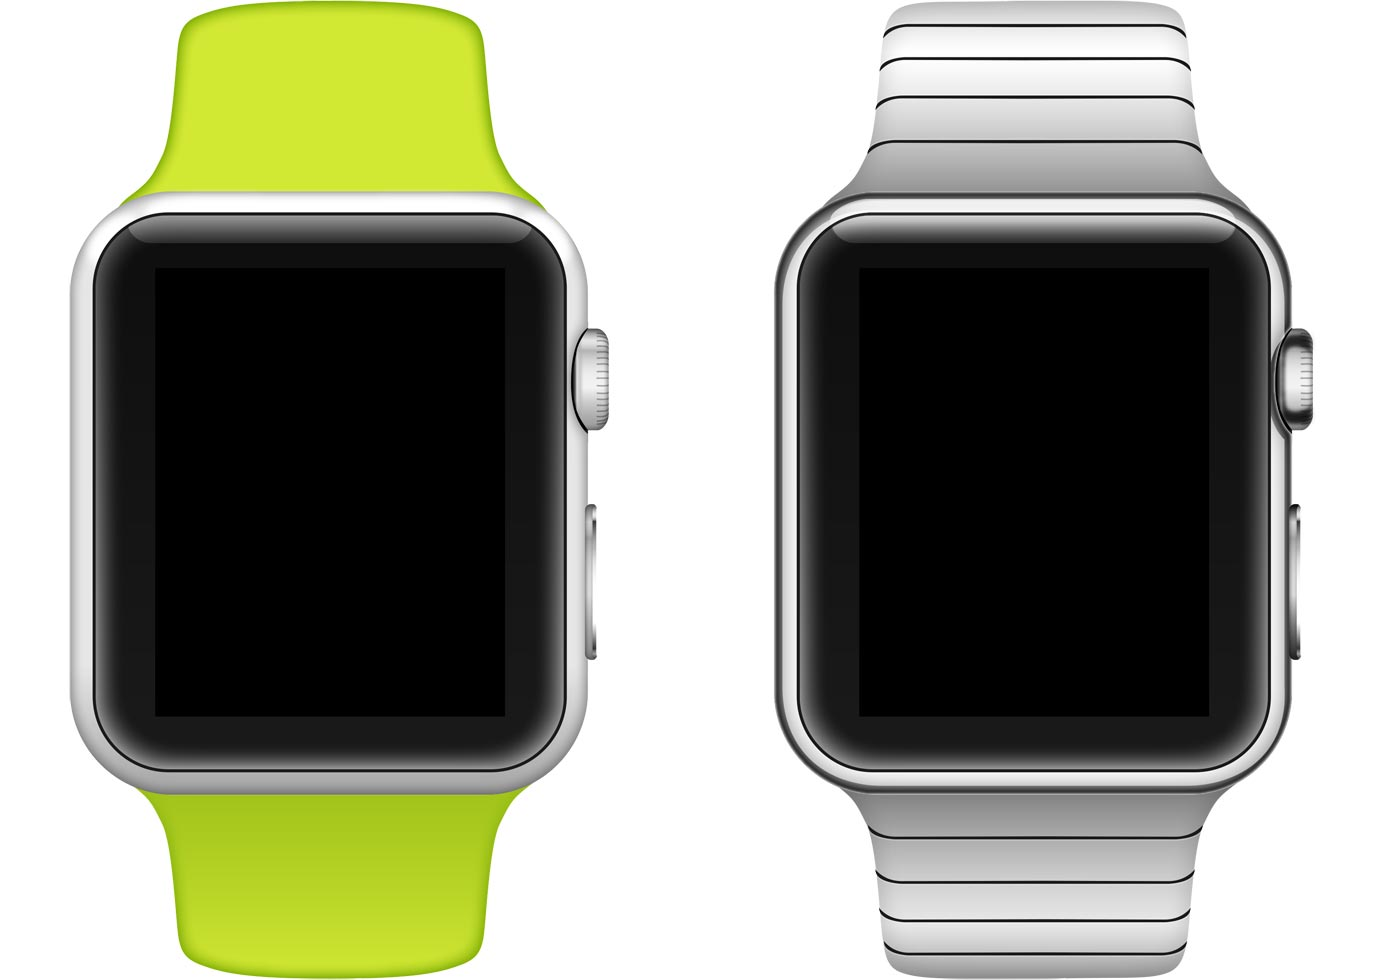 Apple Watch Vector Free Vector Art At Vecteezy